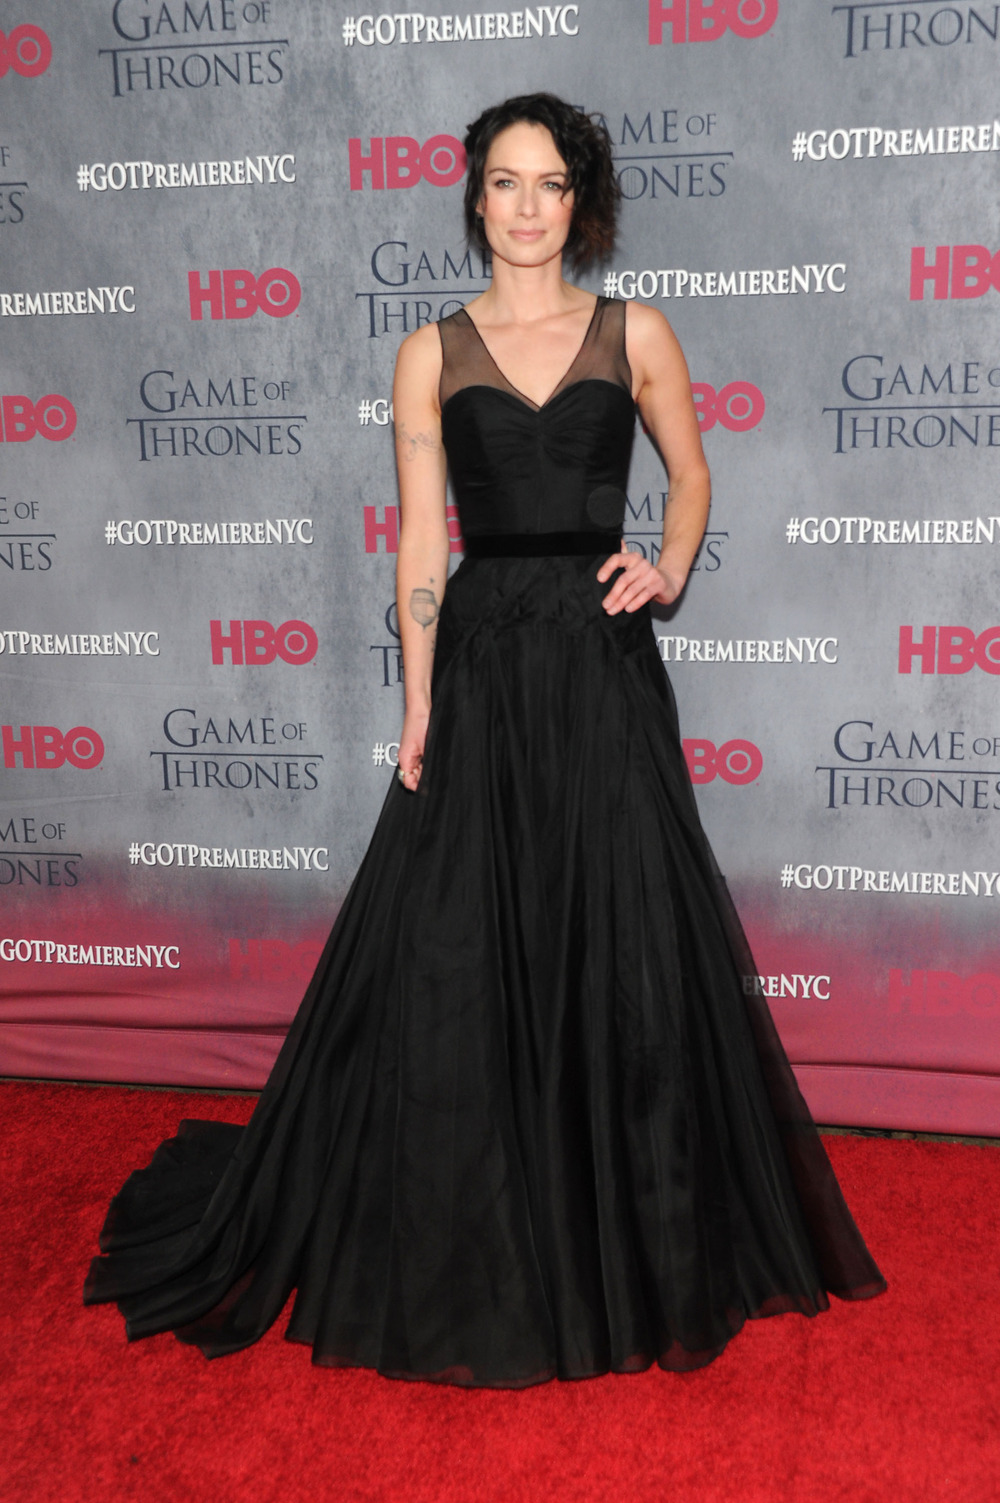 Lena Headey Speaks Out About Game of Thrones Rape Scene